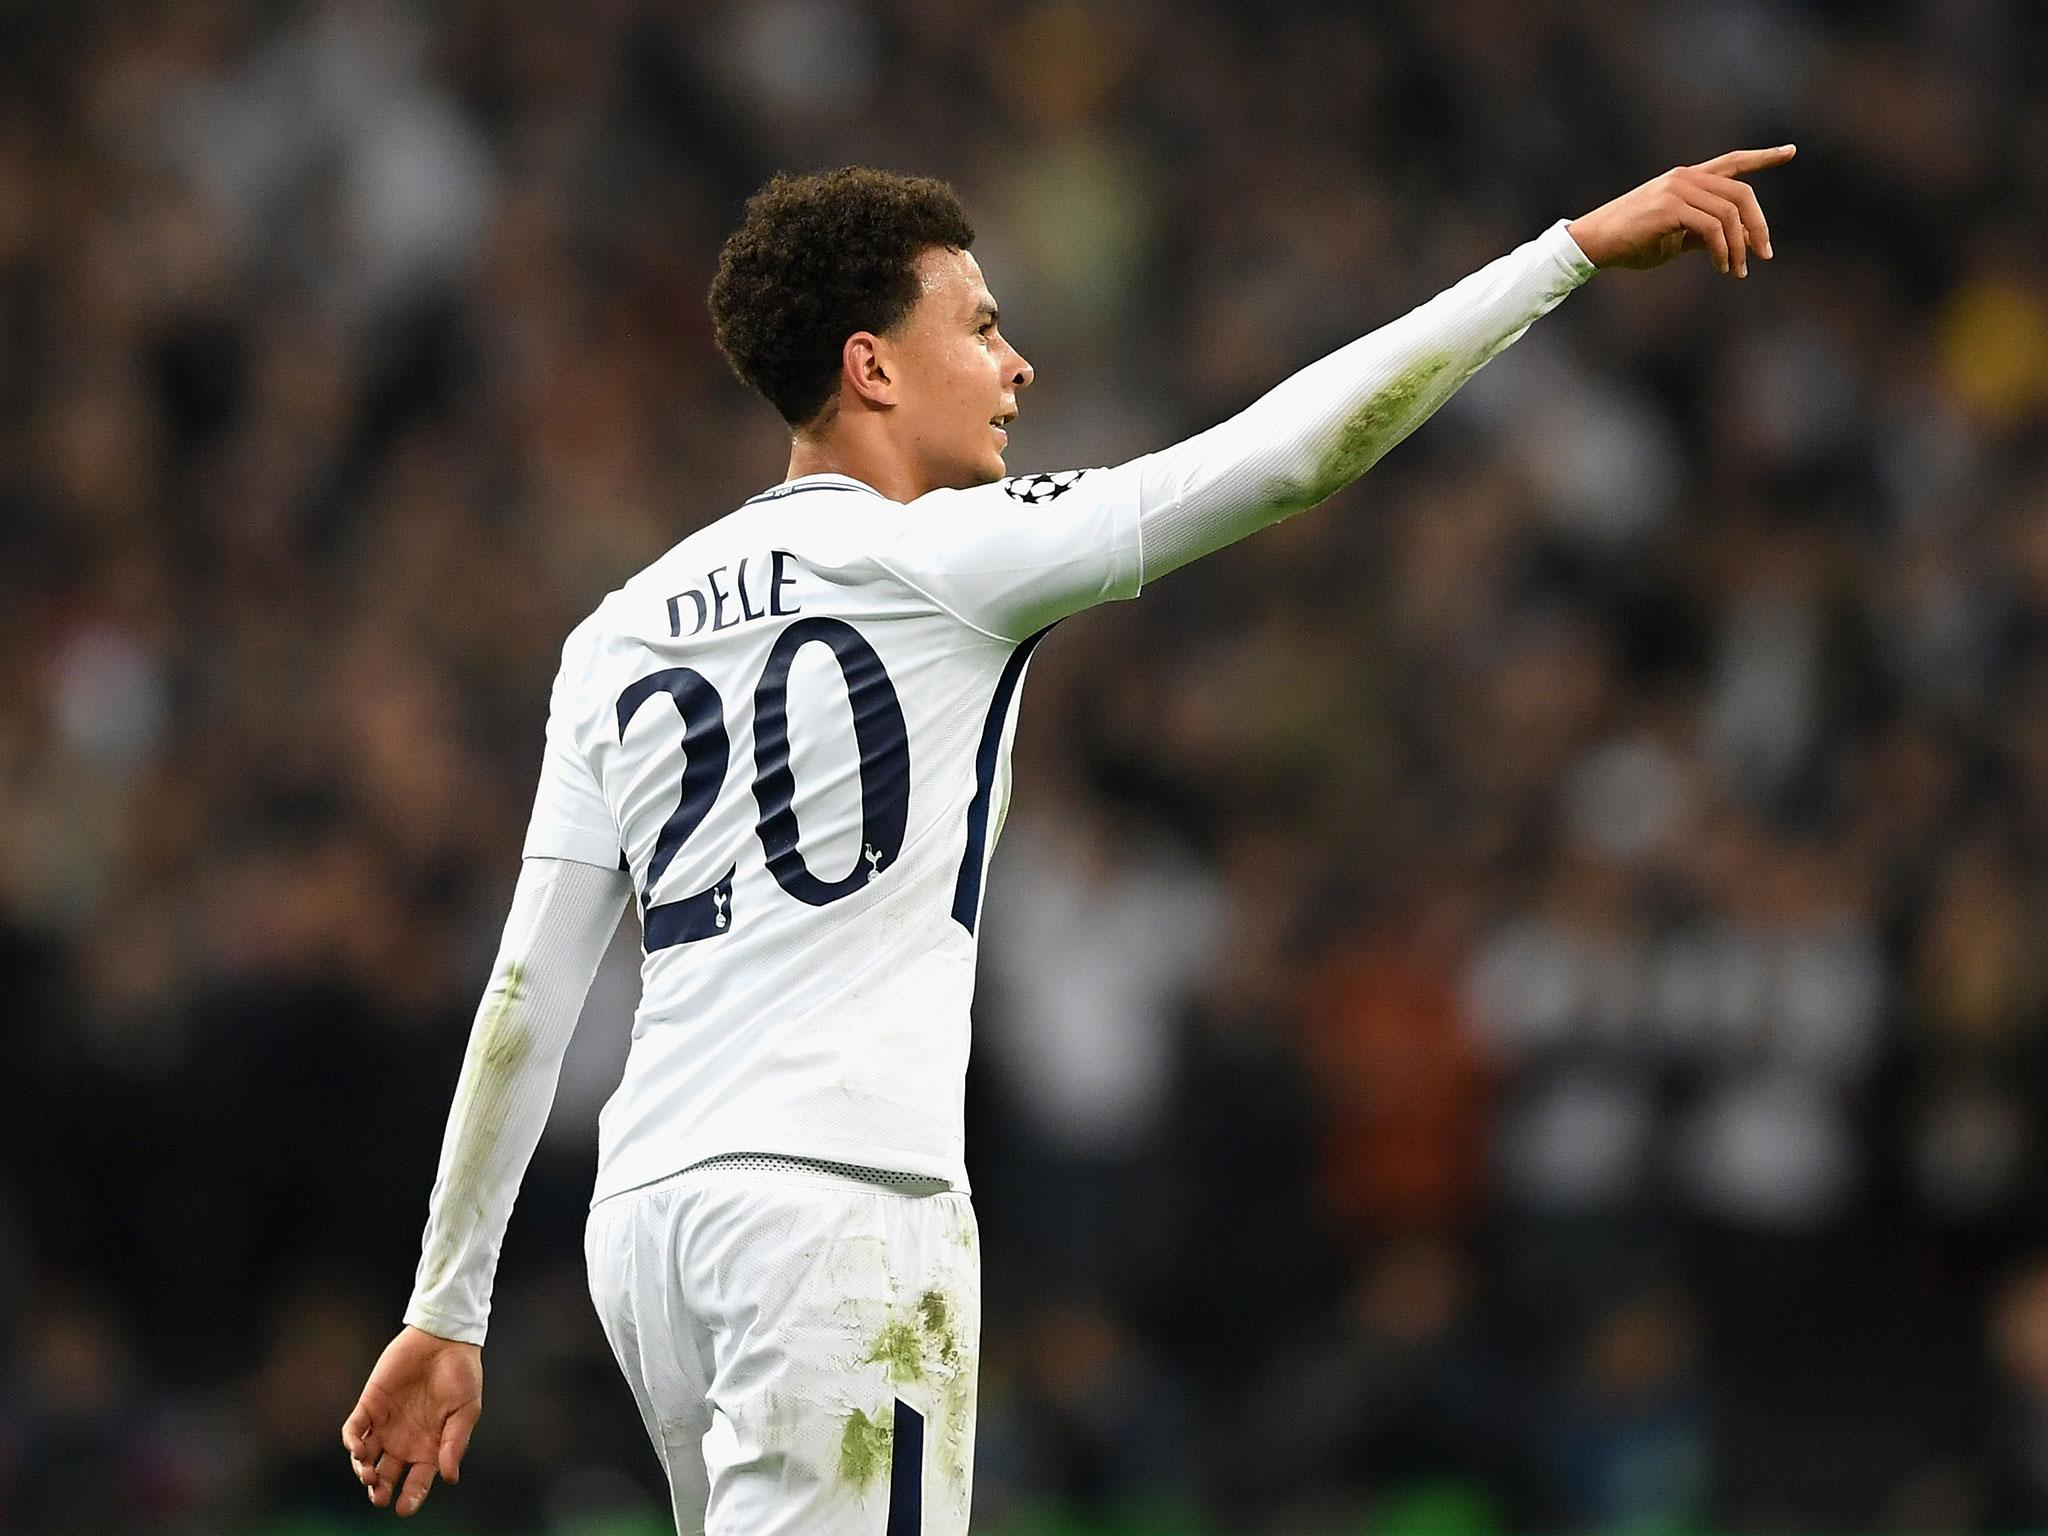 Tottenham midfielder Dele Alli ruled out of England squad for